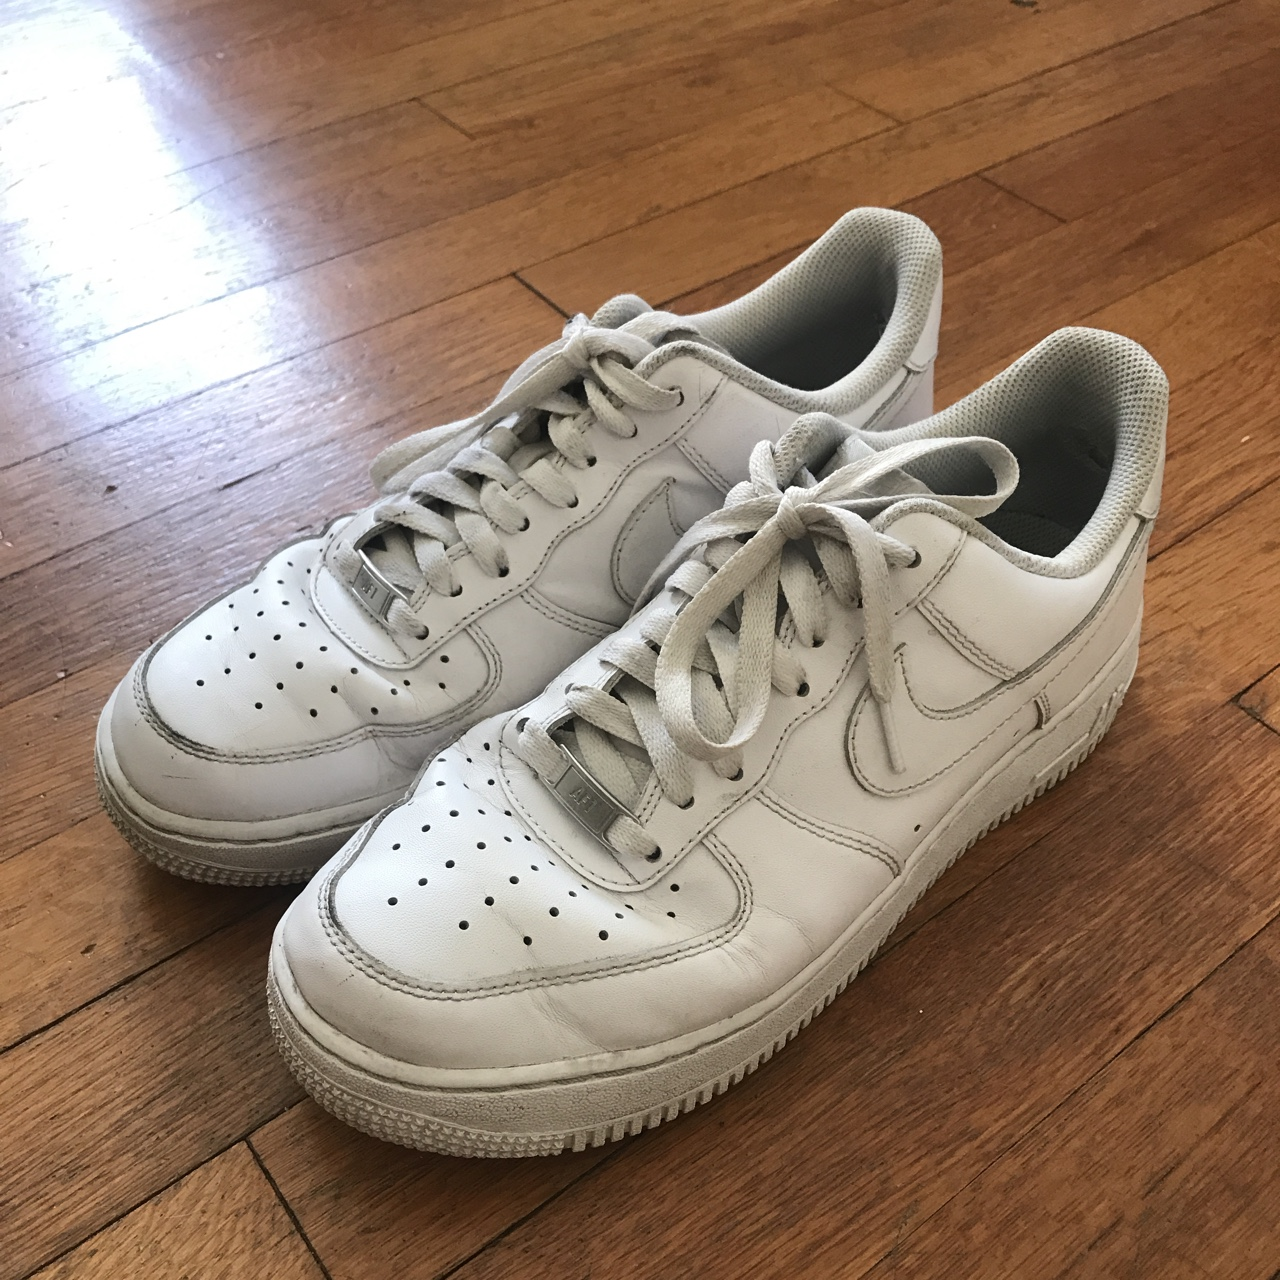 NIKE AIR FORCE 1 SNEAKERS SIZE 10